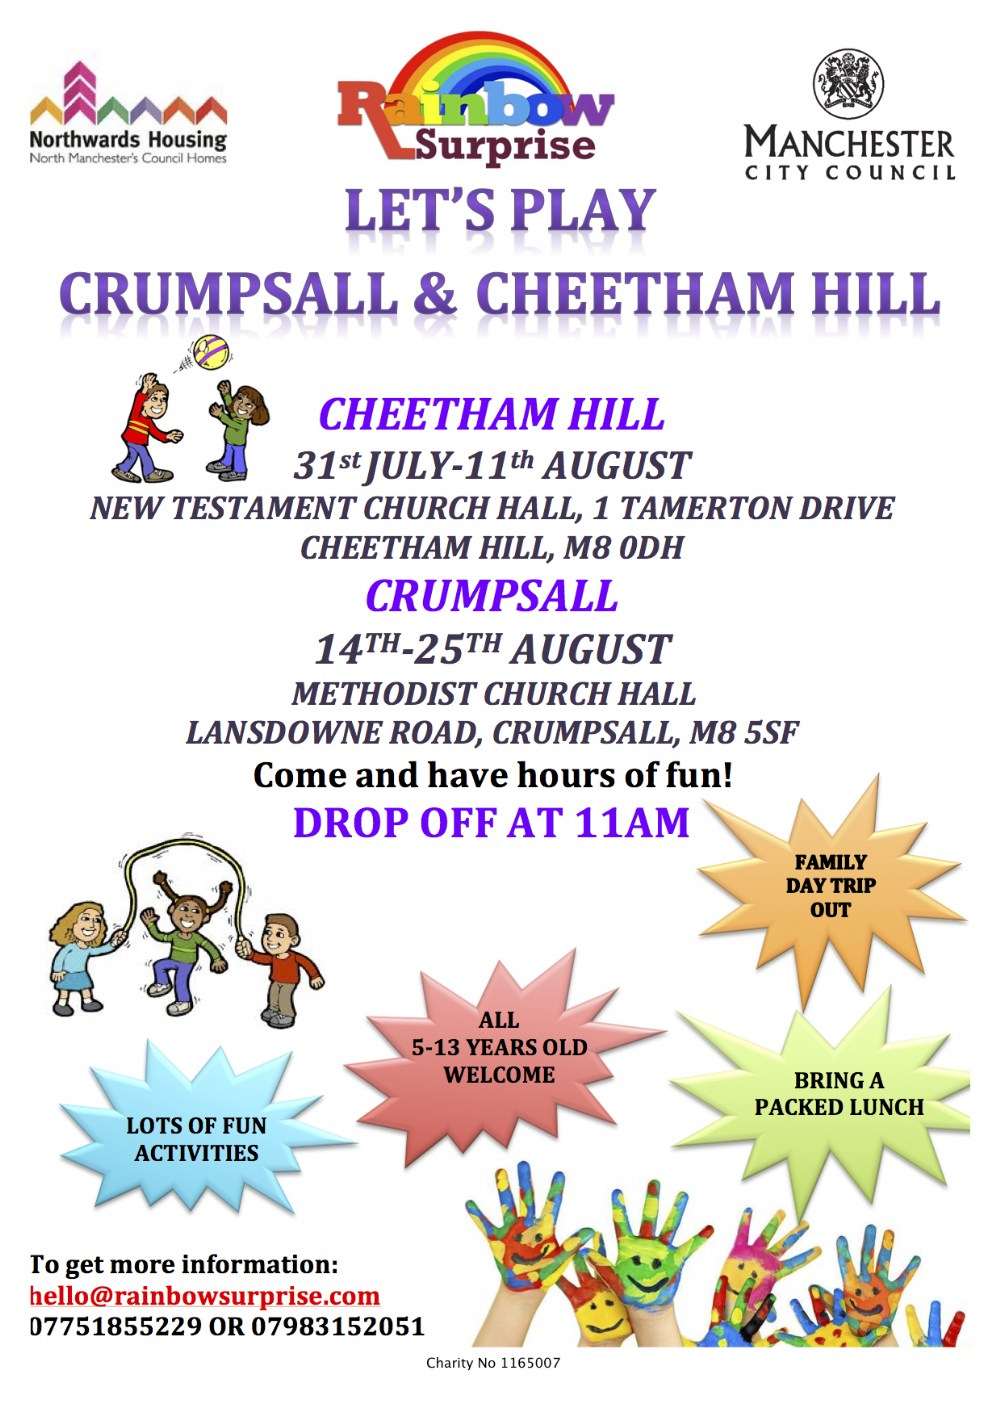 Let's Play Crumpsall & Cheetham Hill